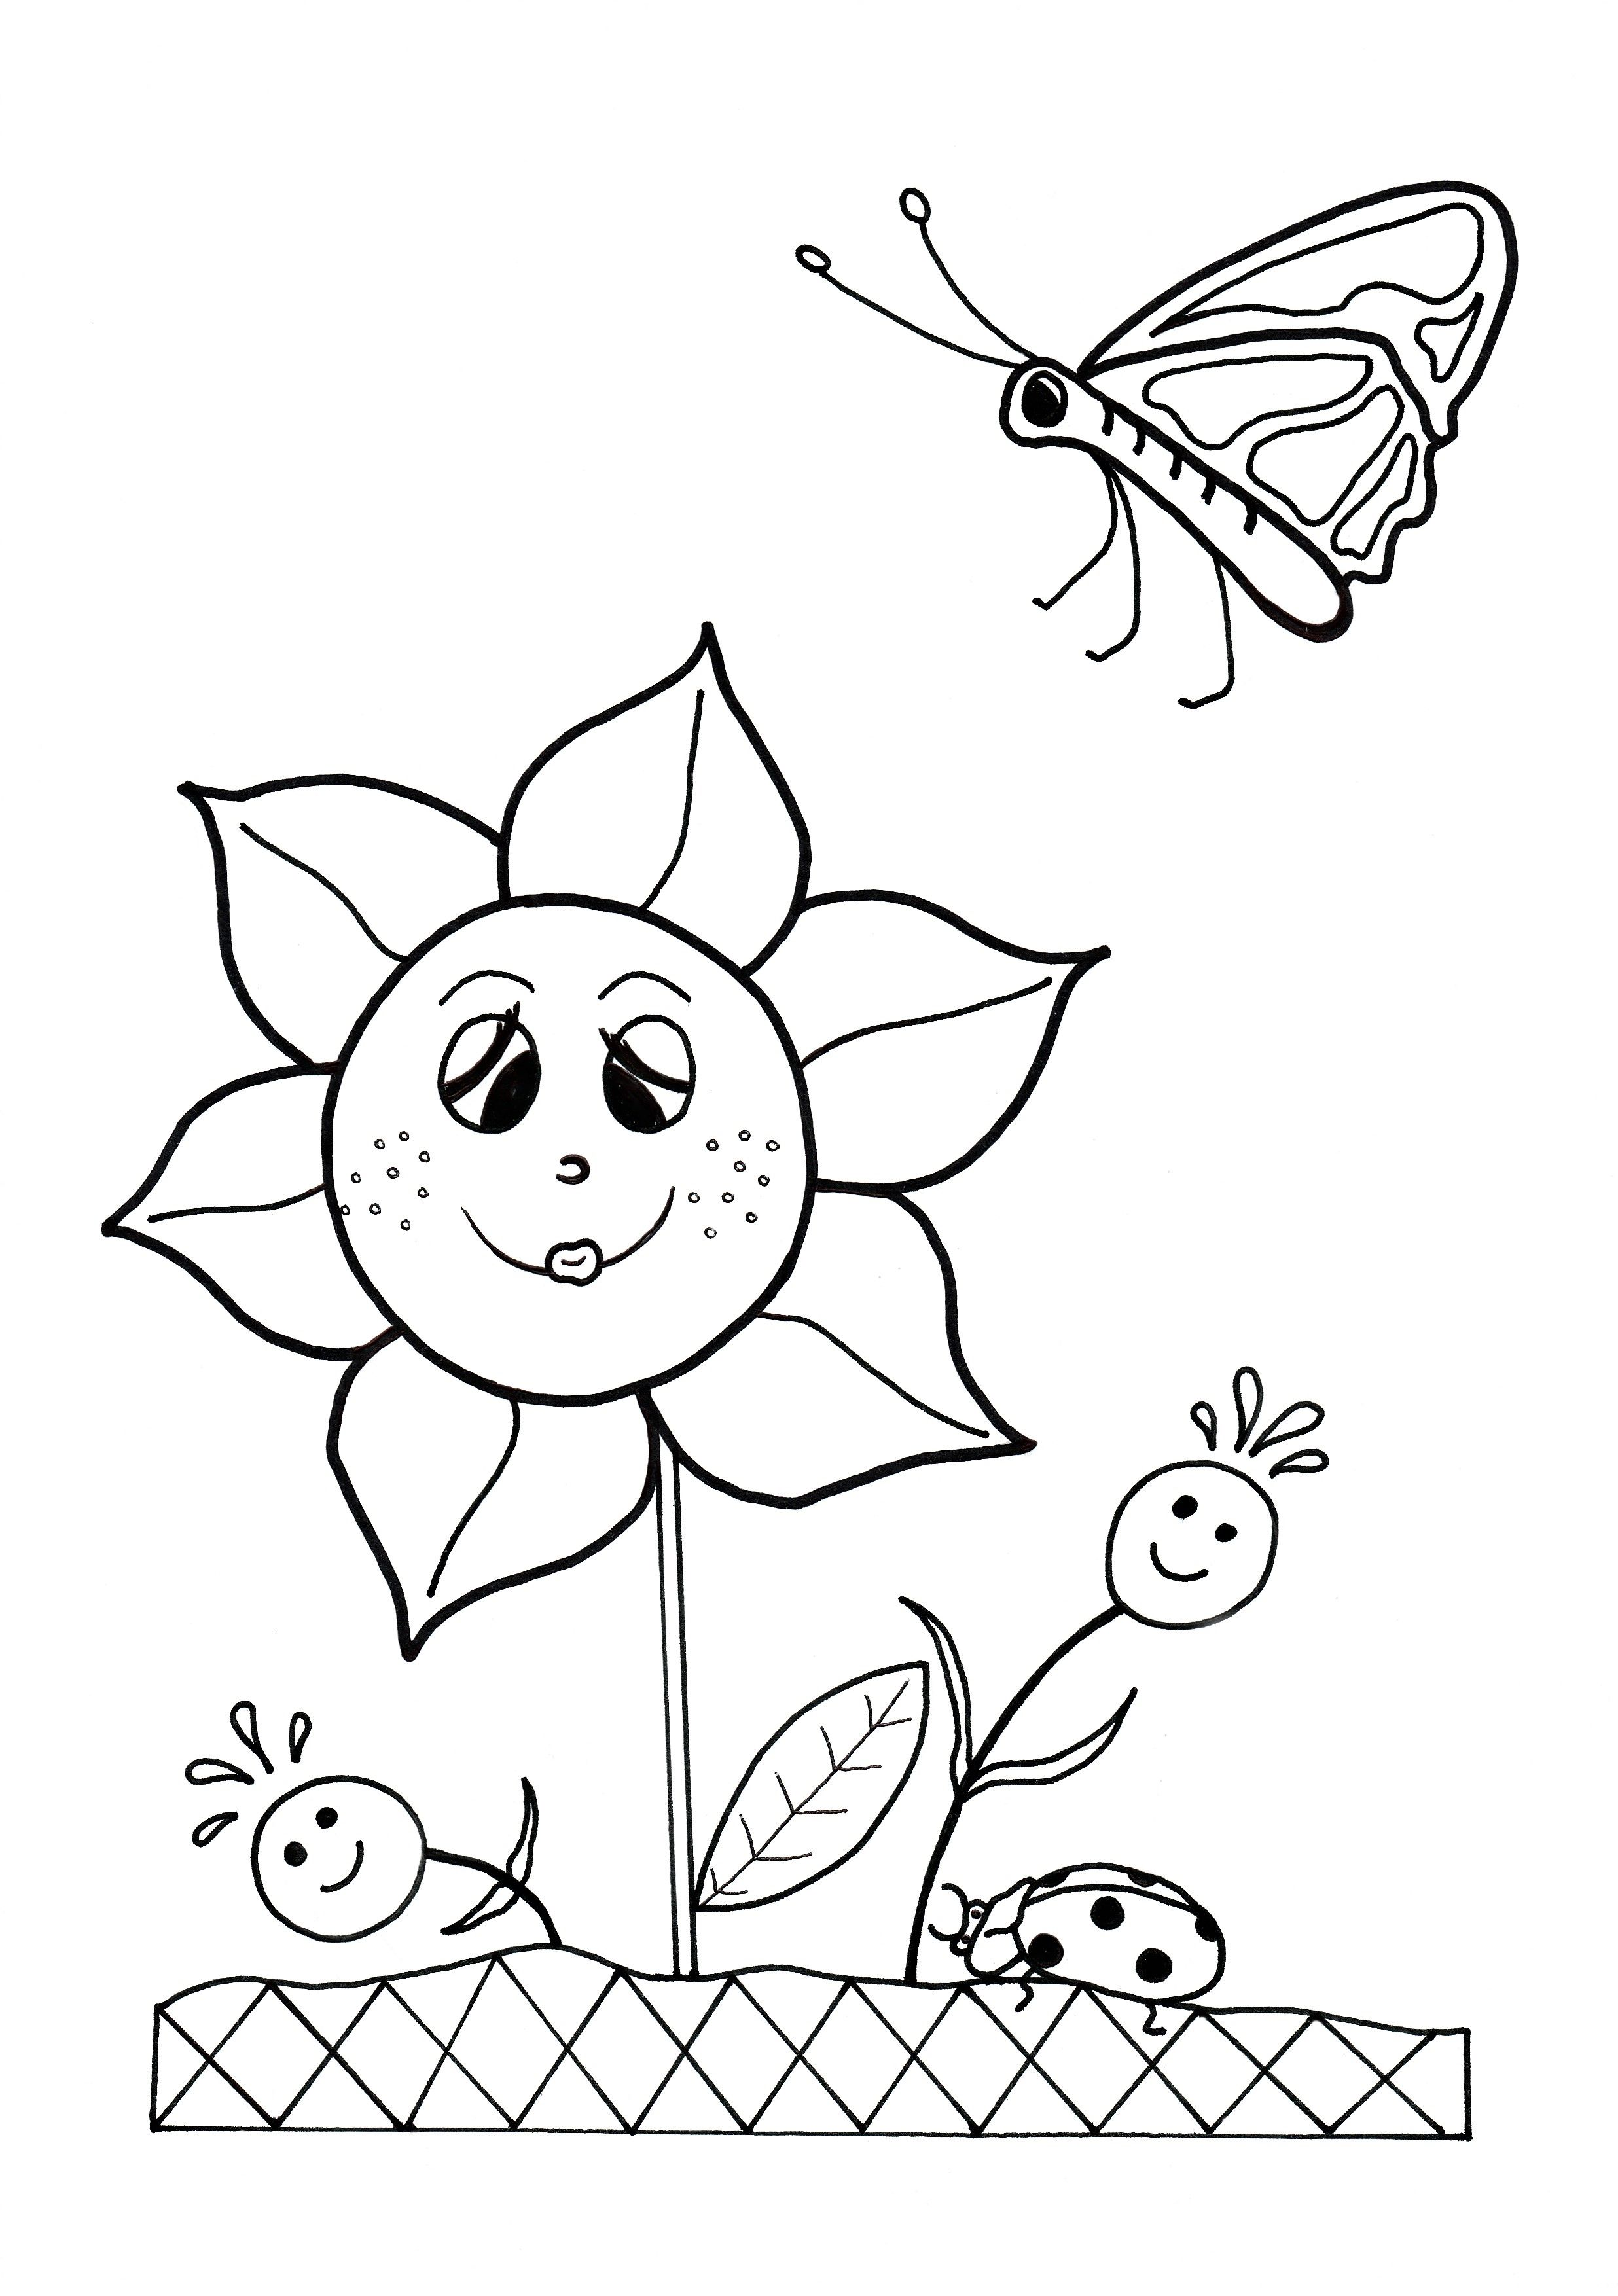 Dancing Flowers Spring Coloring Sheet Spring Coloring Pages